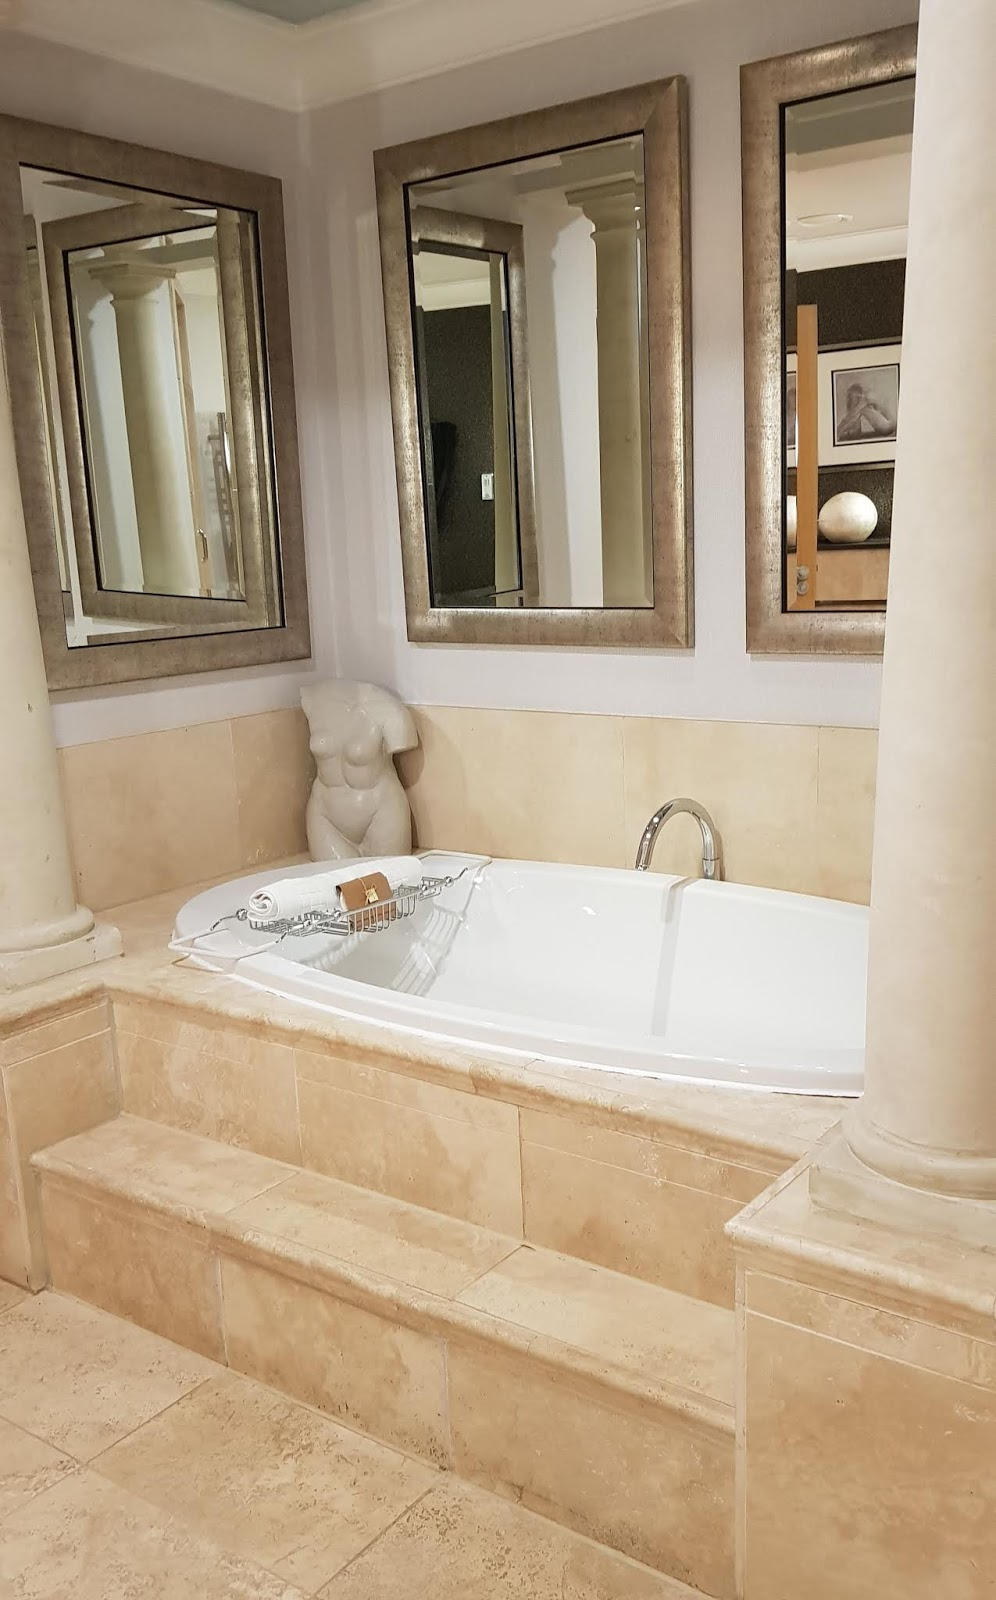 The luxurious bath we never got to use